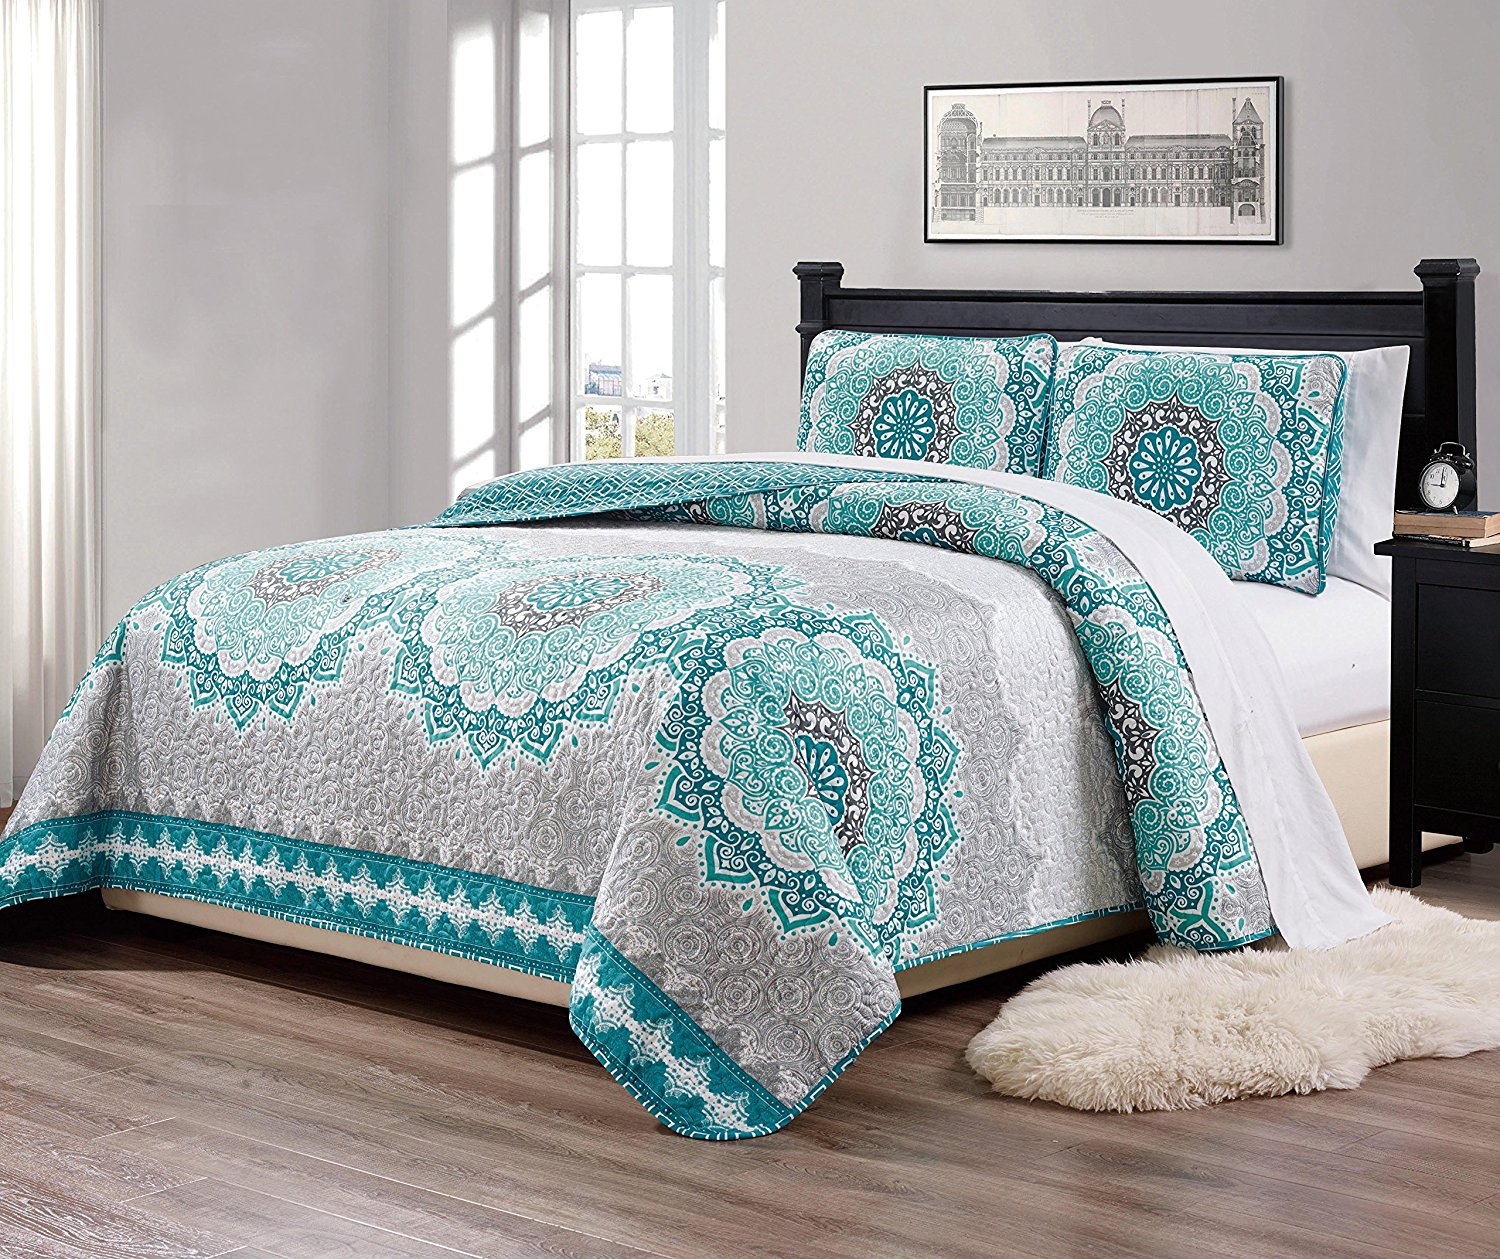 "Fancy Collection 3 Pc King/California King Over Size Quilted Bedspread Set Aqua Turquoise Coastal Plain/""Gray Green"" White Elegant Design New"